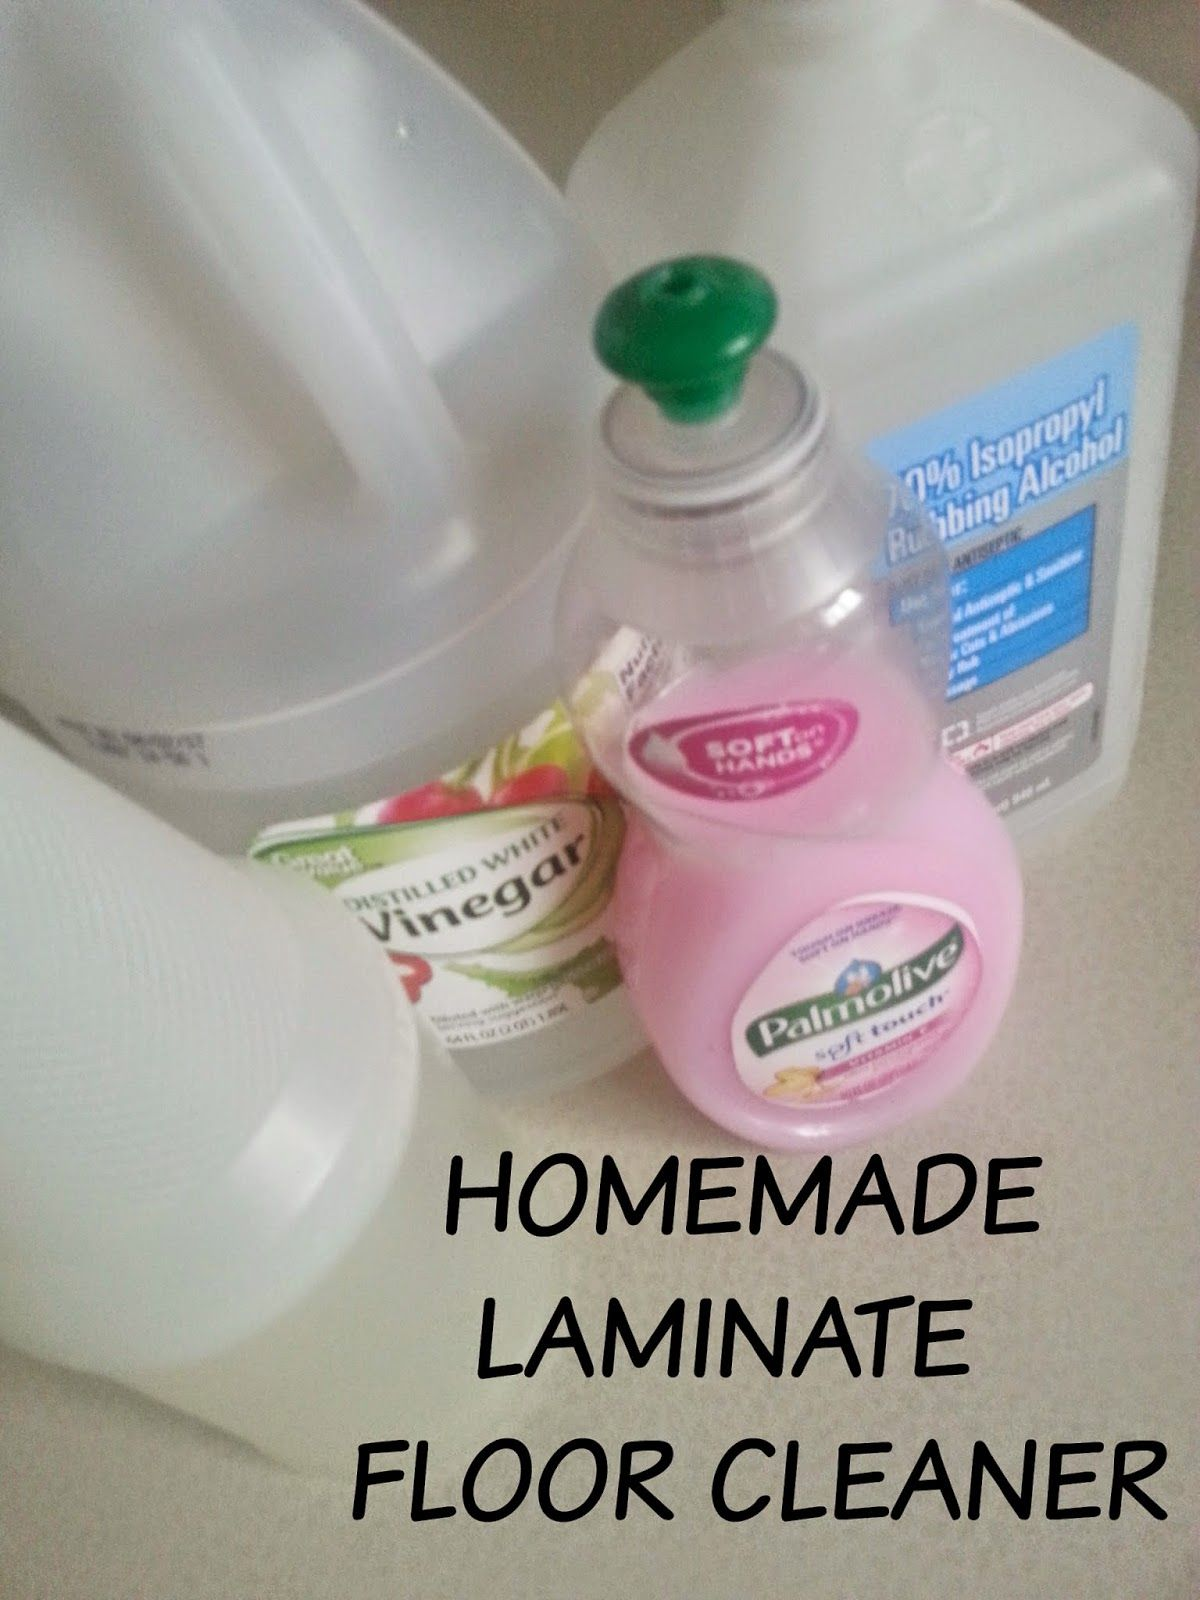 Cleaner For Laminate Floors 2013_msc wood laminate Homemade Laminate Floor Cleaner 1 Cup Water 1 Cup Rubbing Alcohol 1 Cup White Vinegar 1